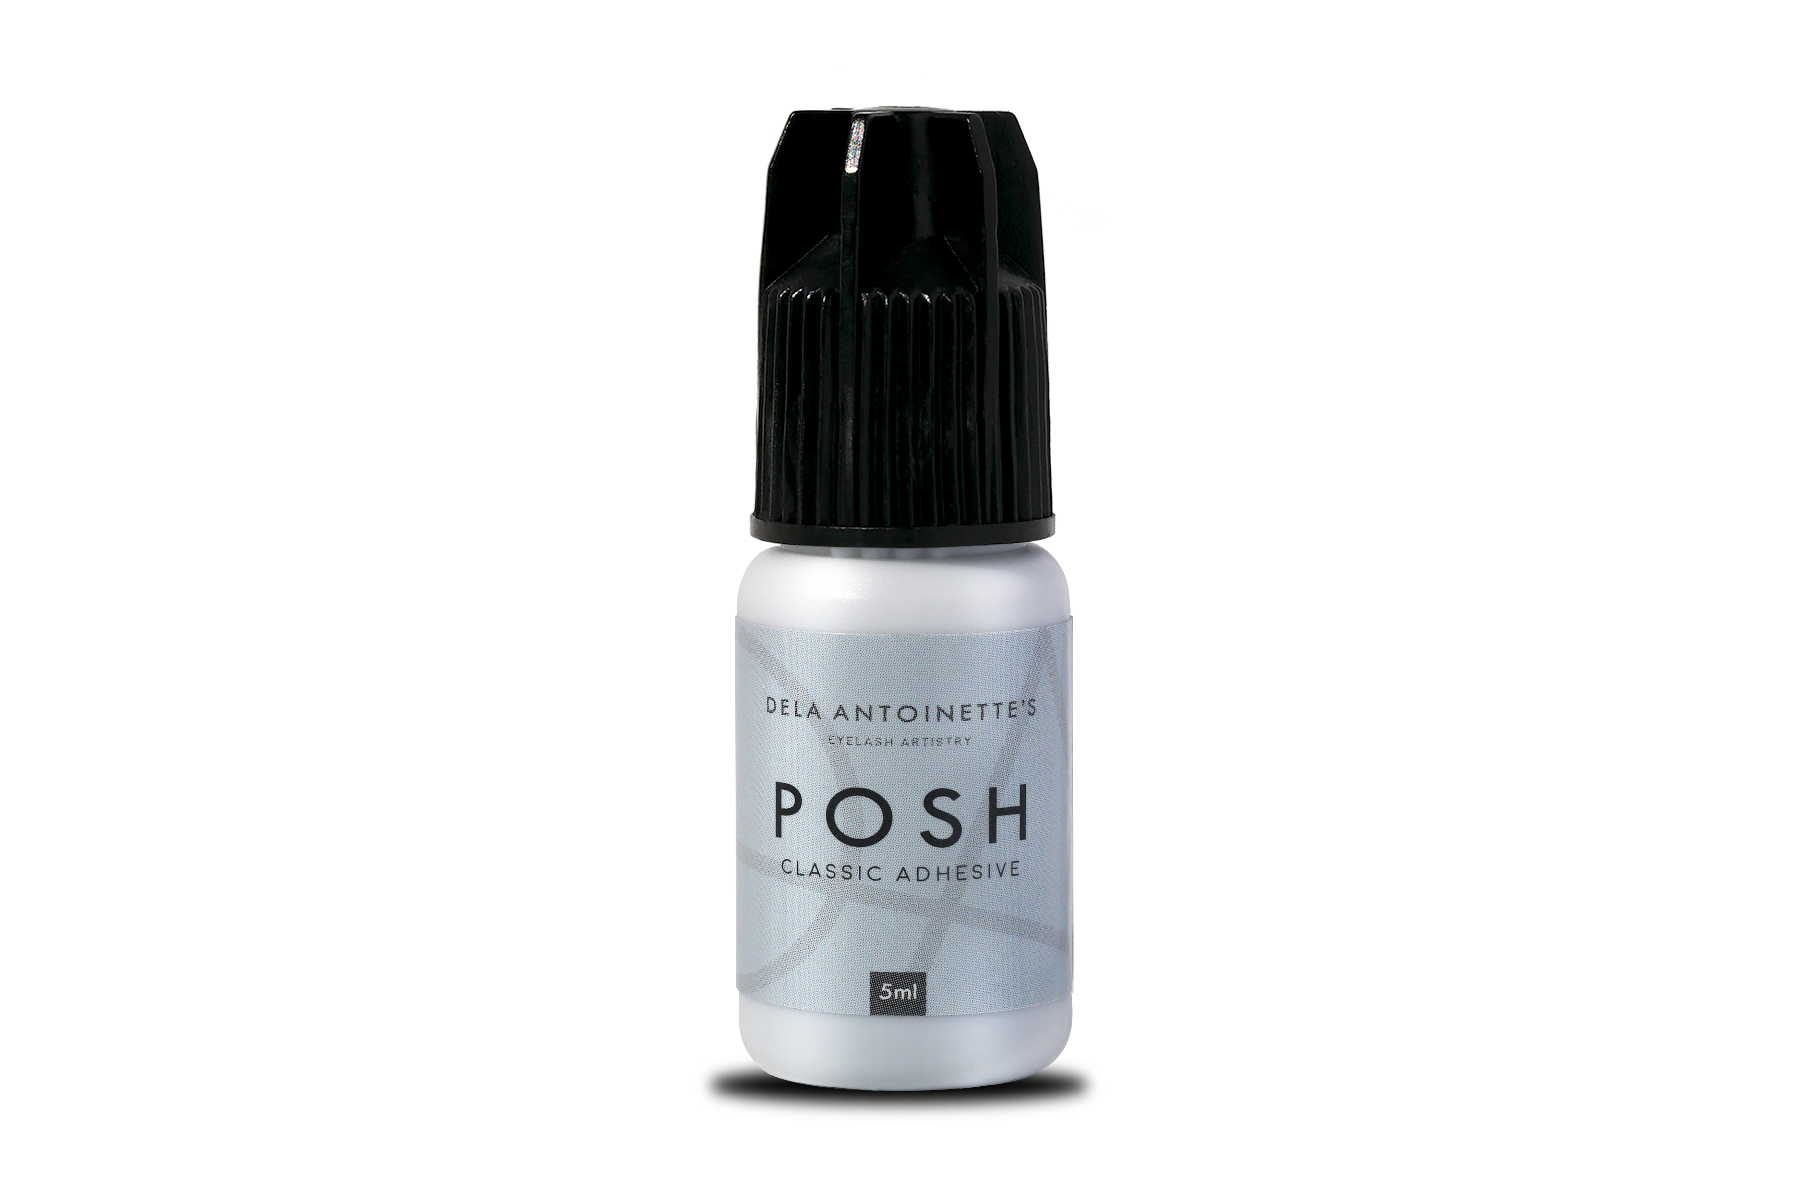 Copy of Posh Classic Adhesive